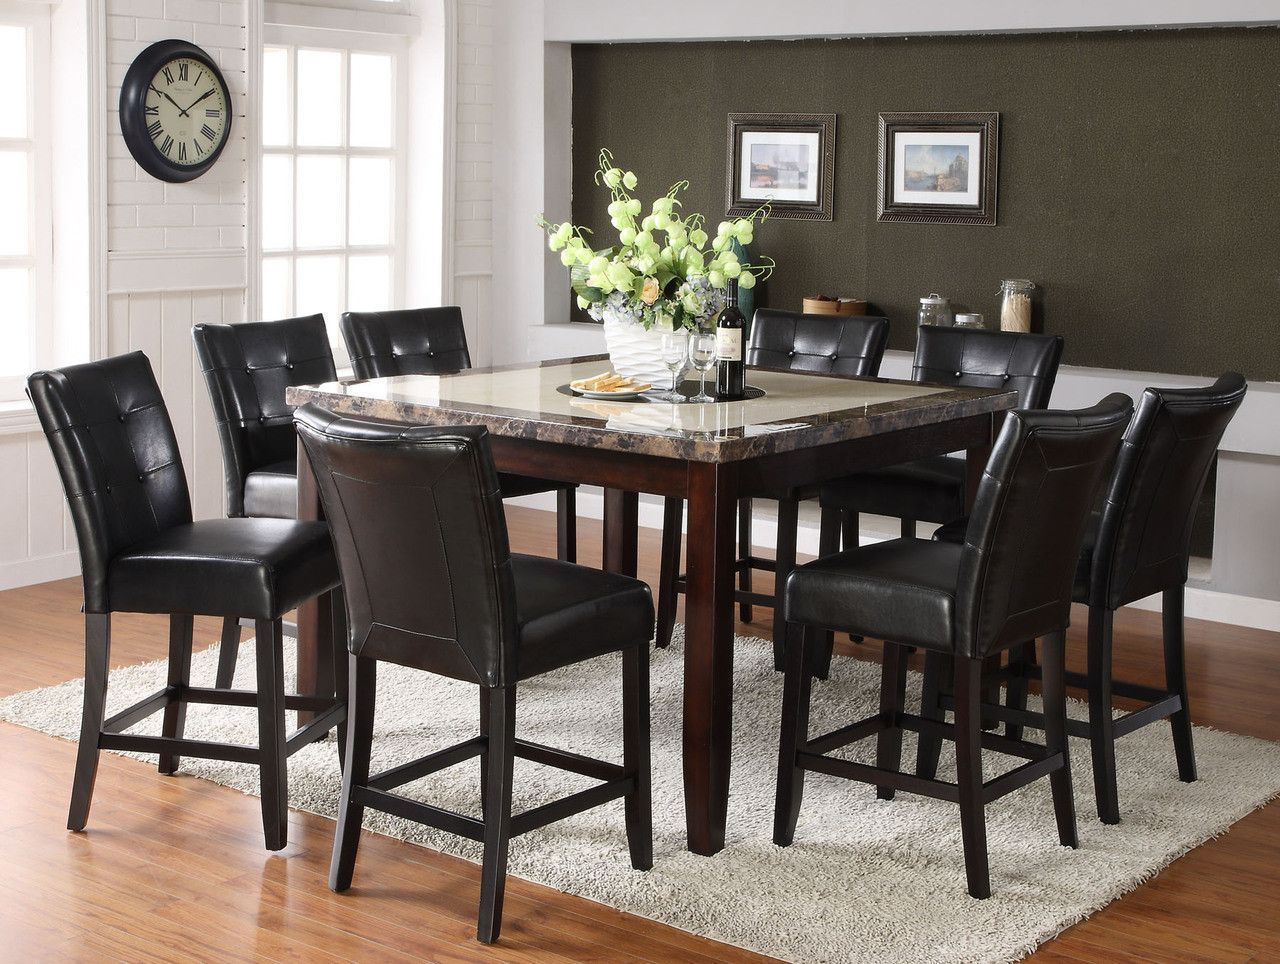 Counter Height Dining Table With 6 Chairs Belleview Ii Collection